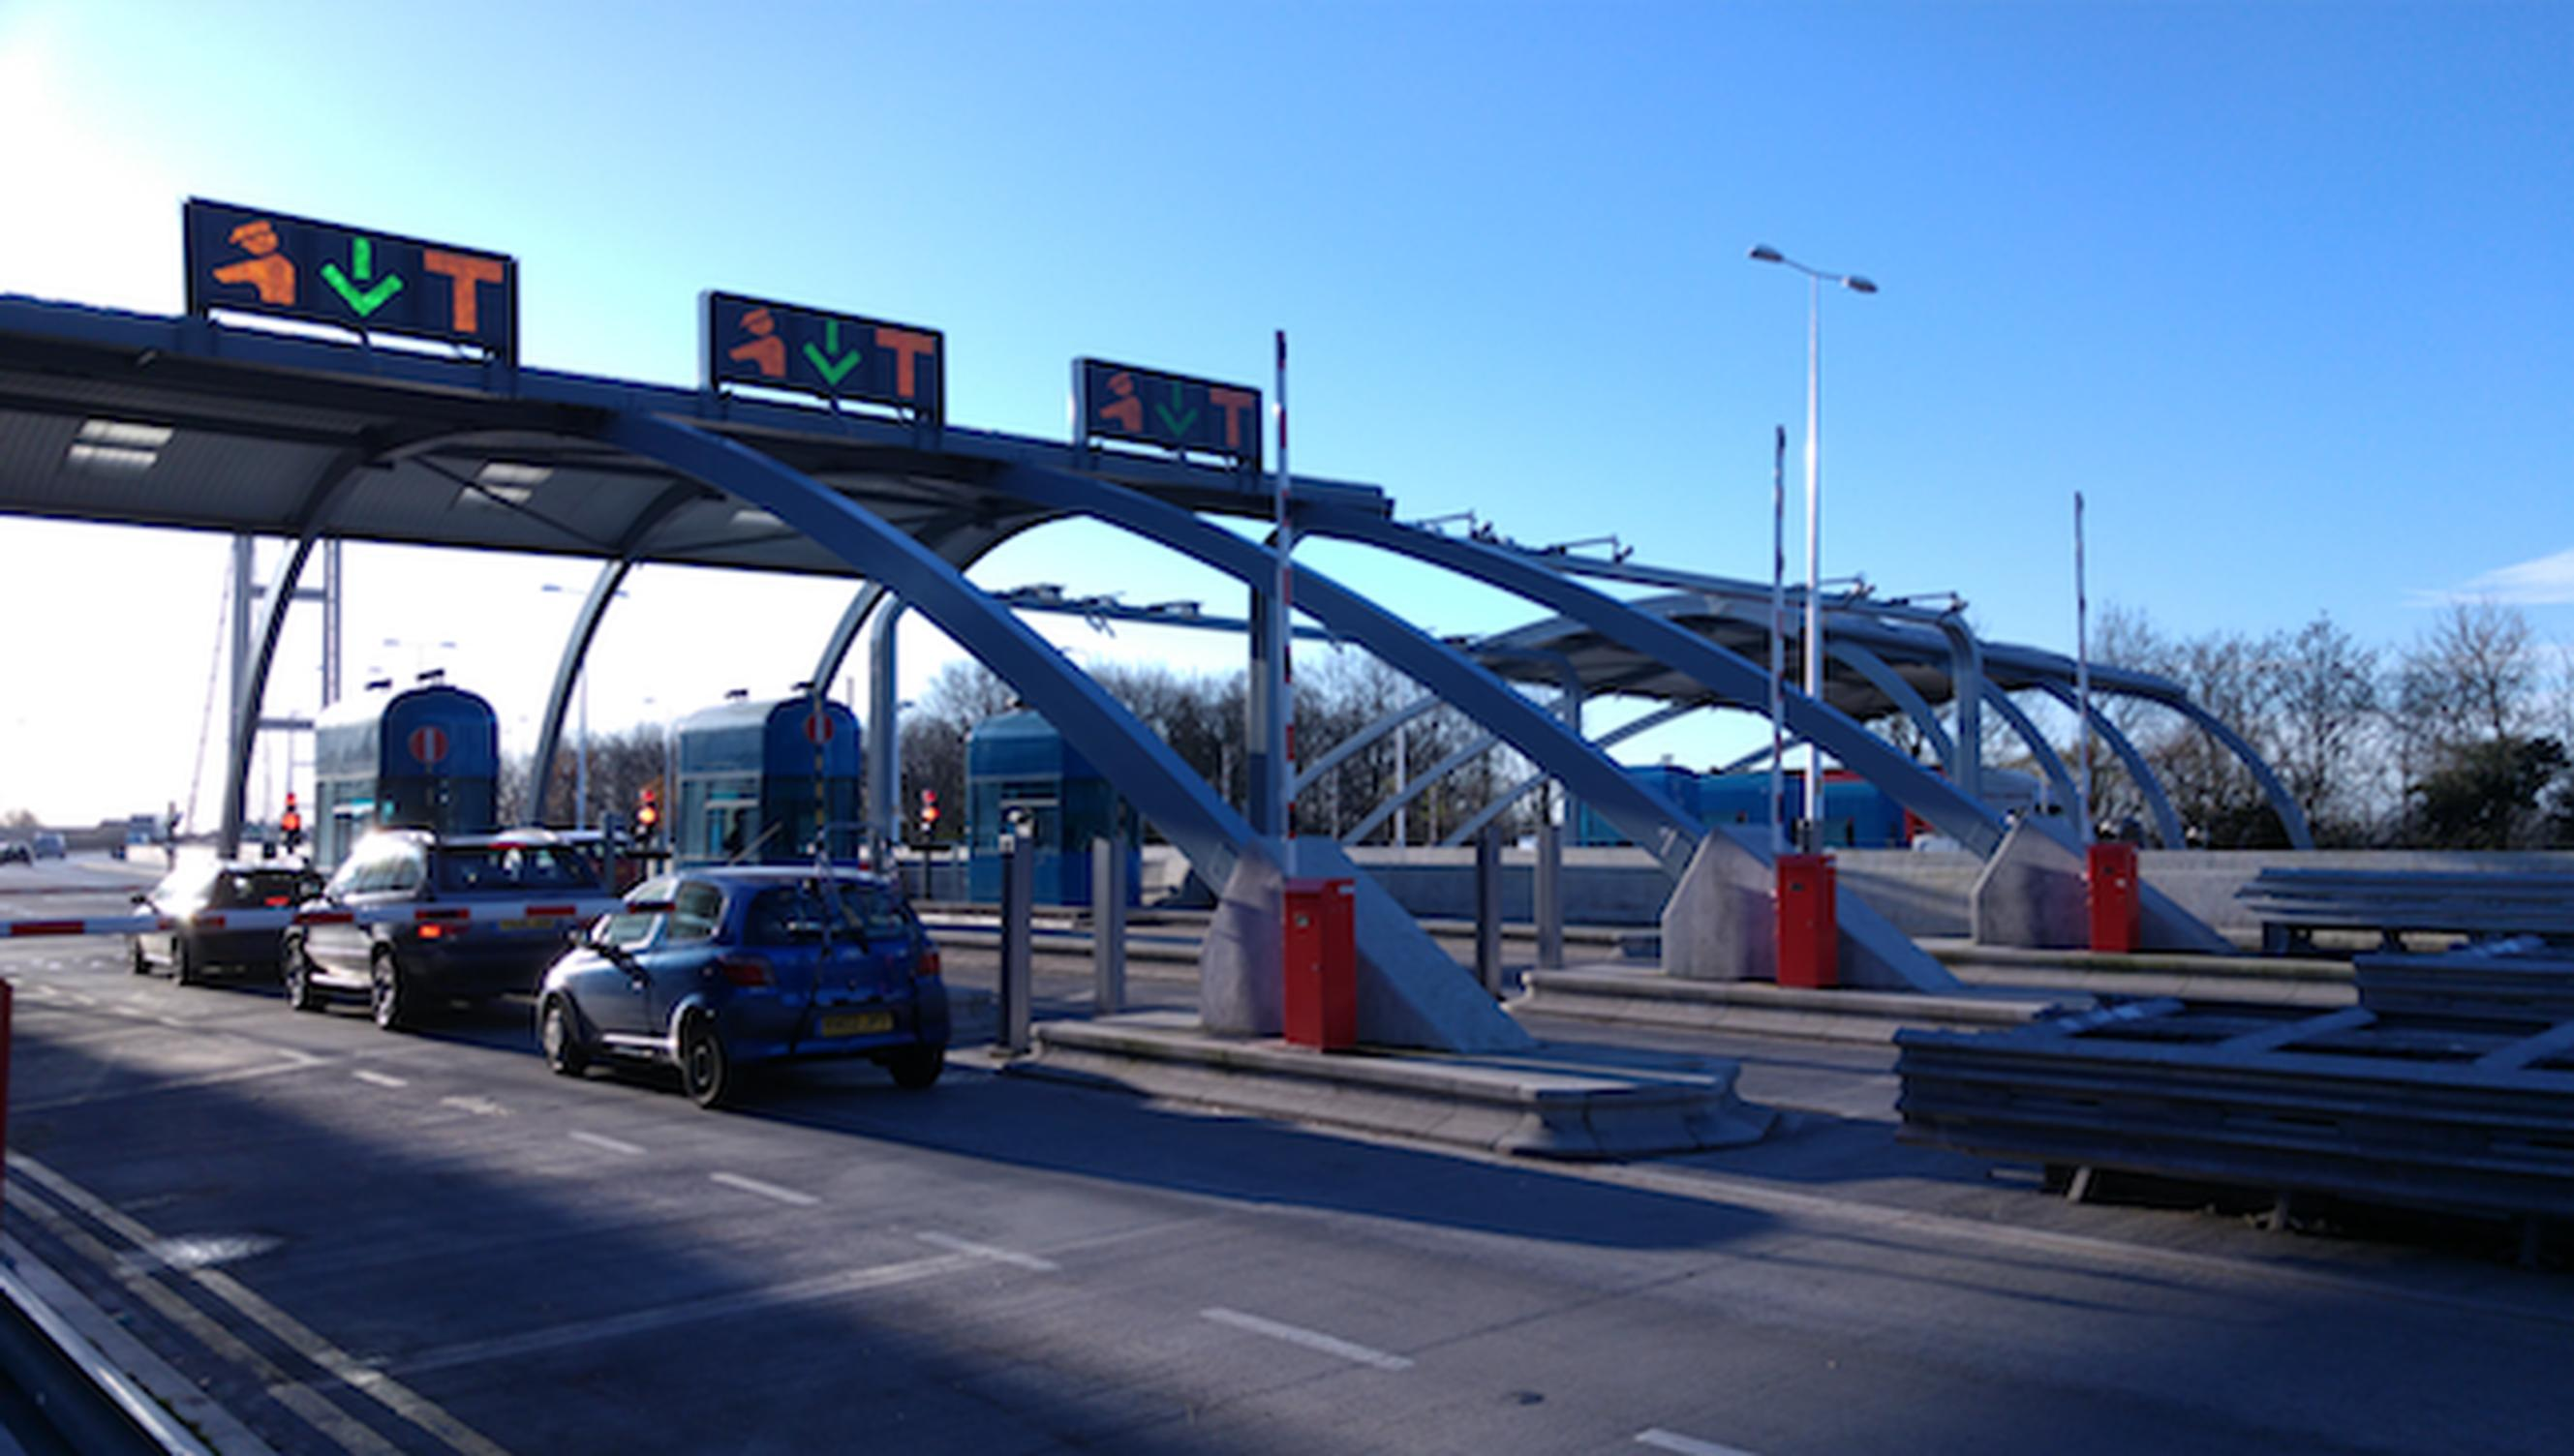 Humber Crossing toll plaza (SICE UK)